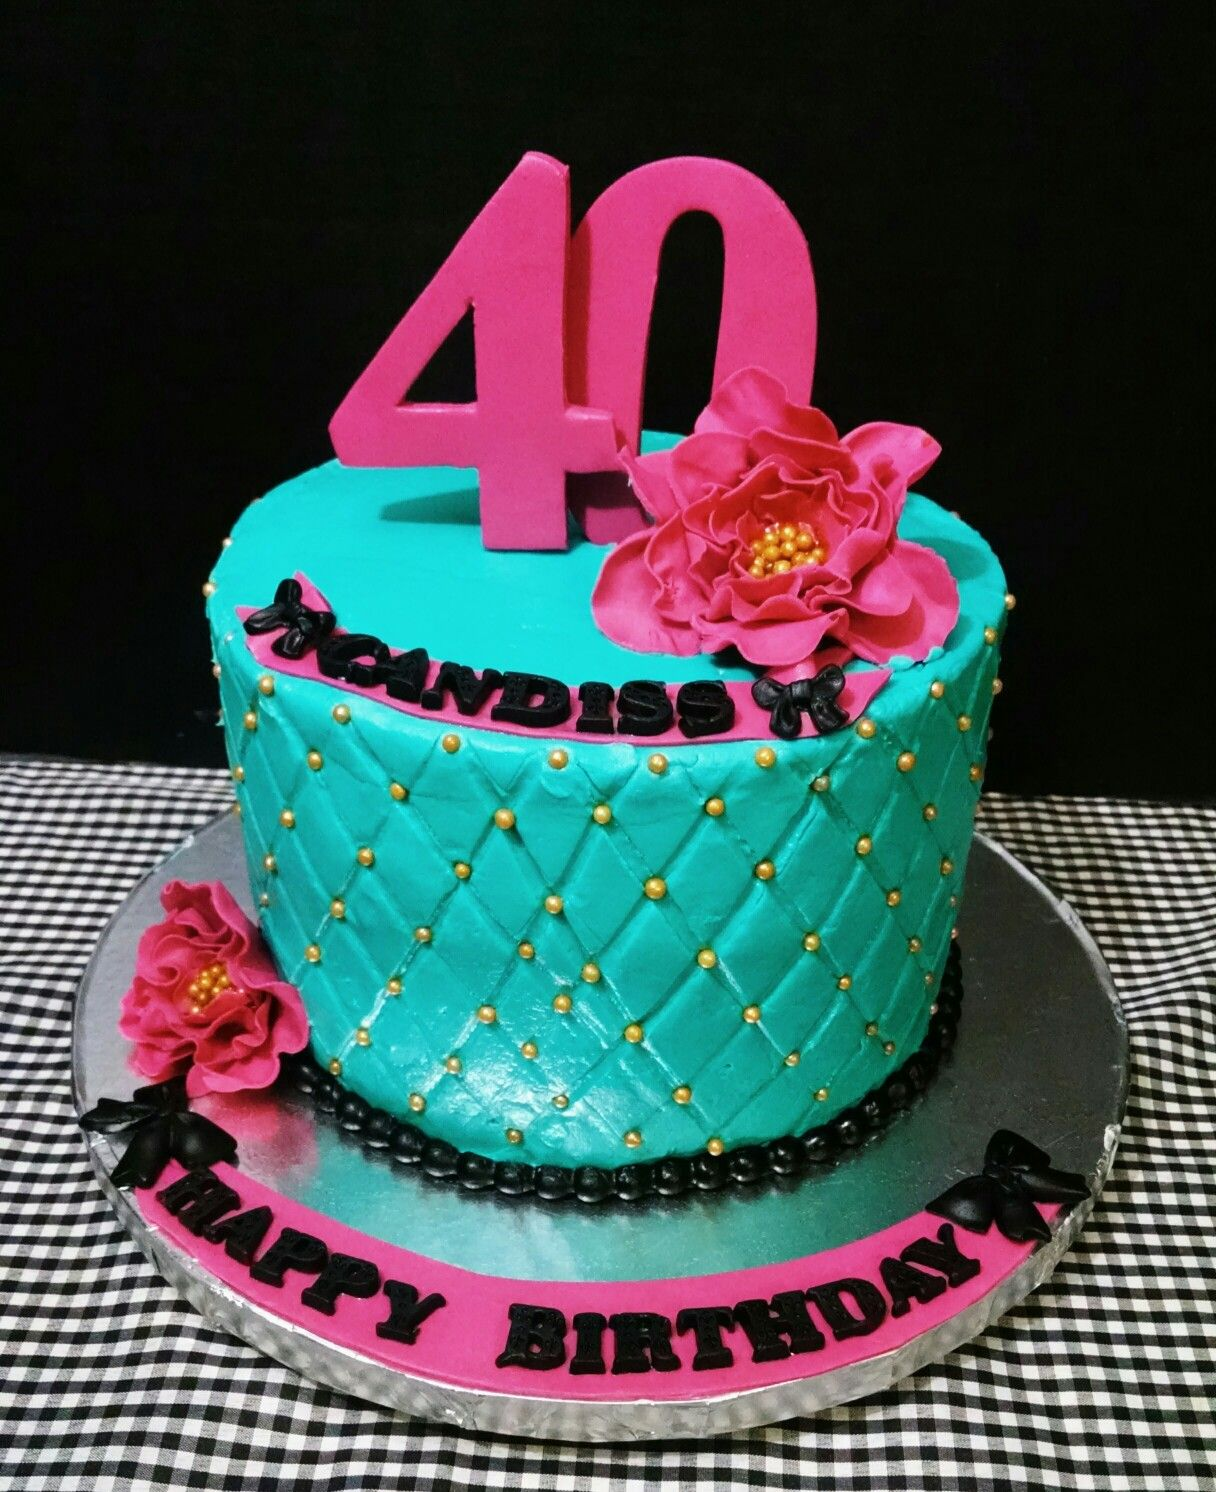 40th Quilted Teal and Fuchsia Birthday Cake with Fondant Flowers